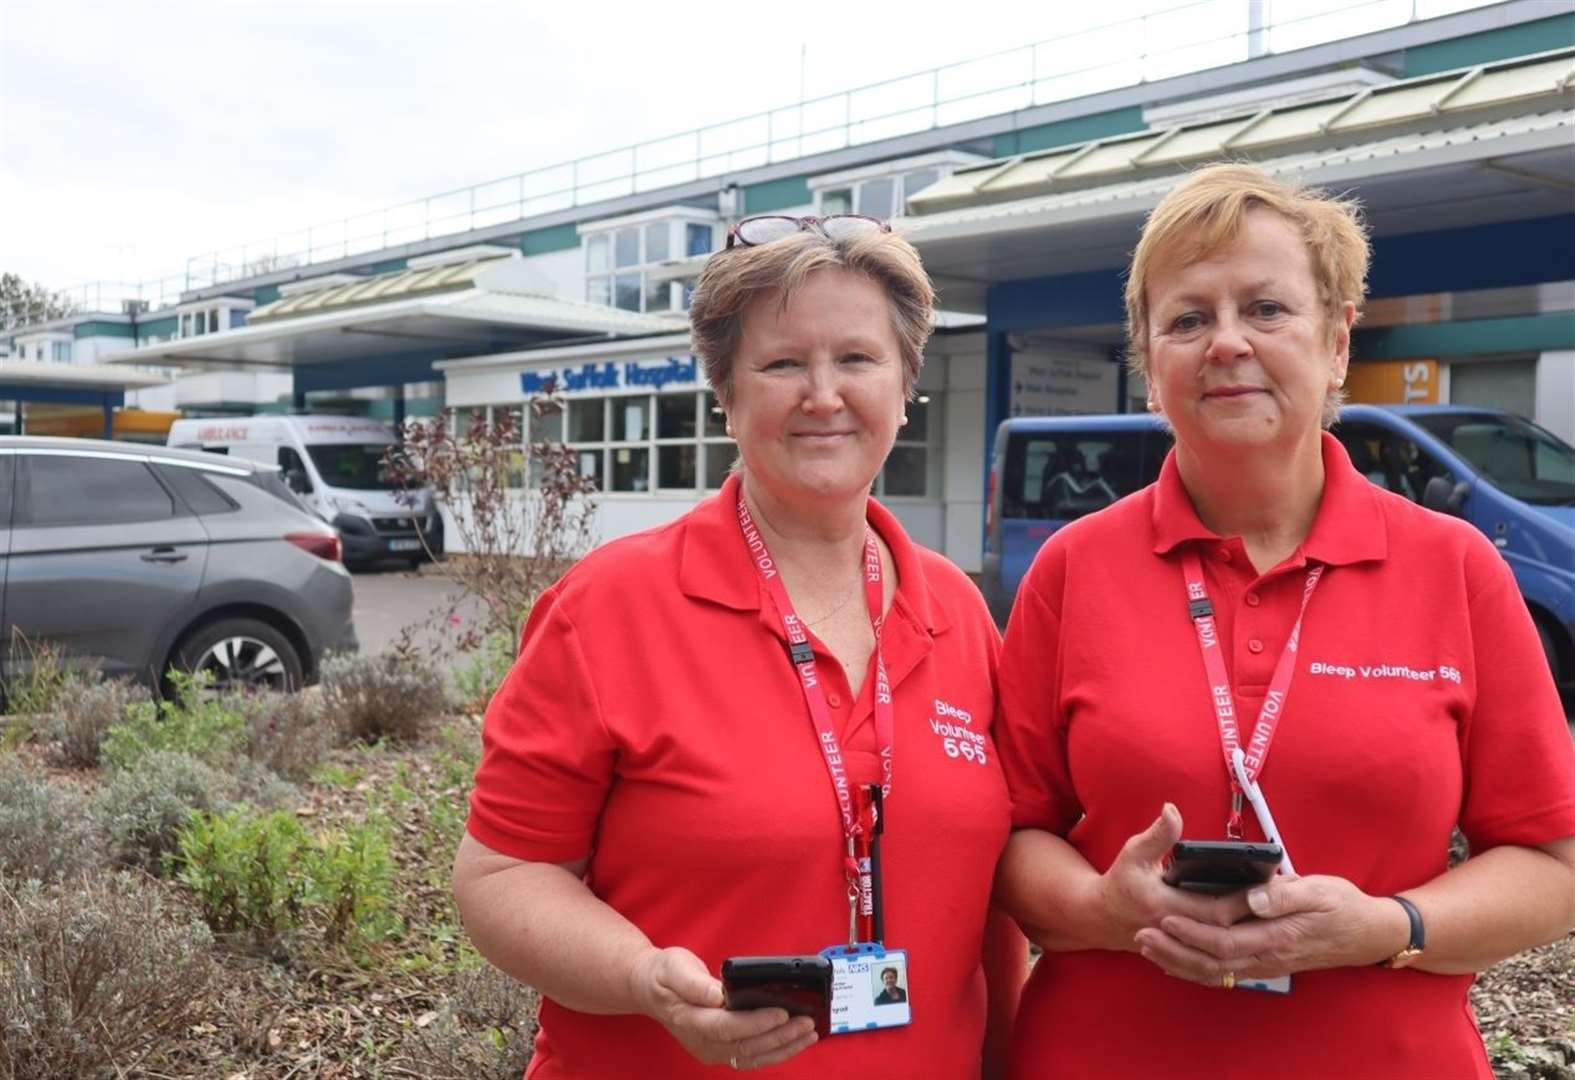 Praise for time-saving West Suffolk Hospital volunteer team